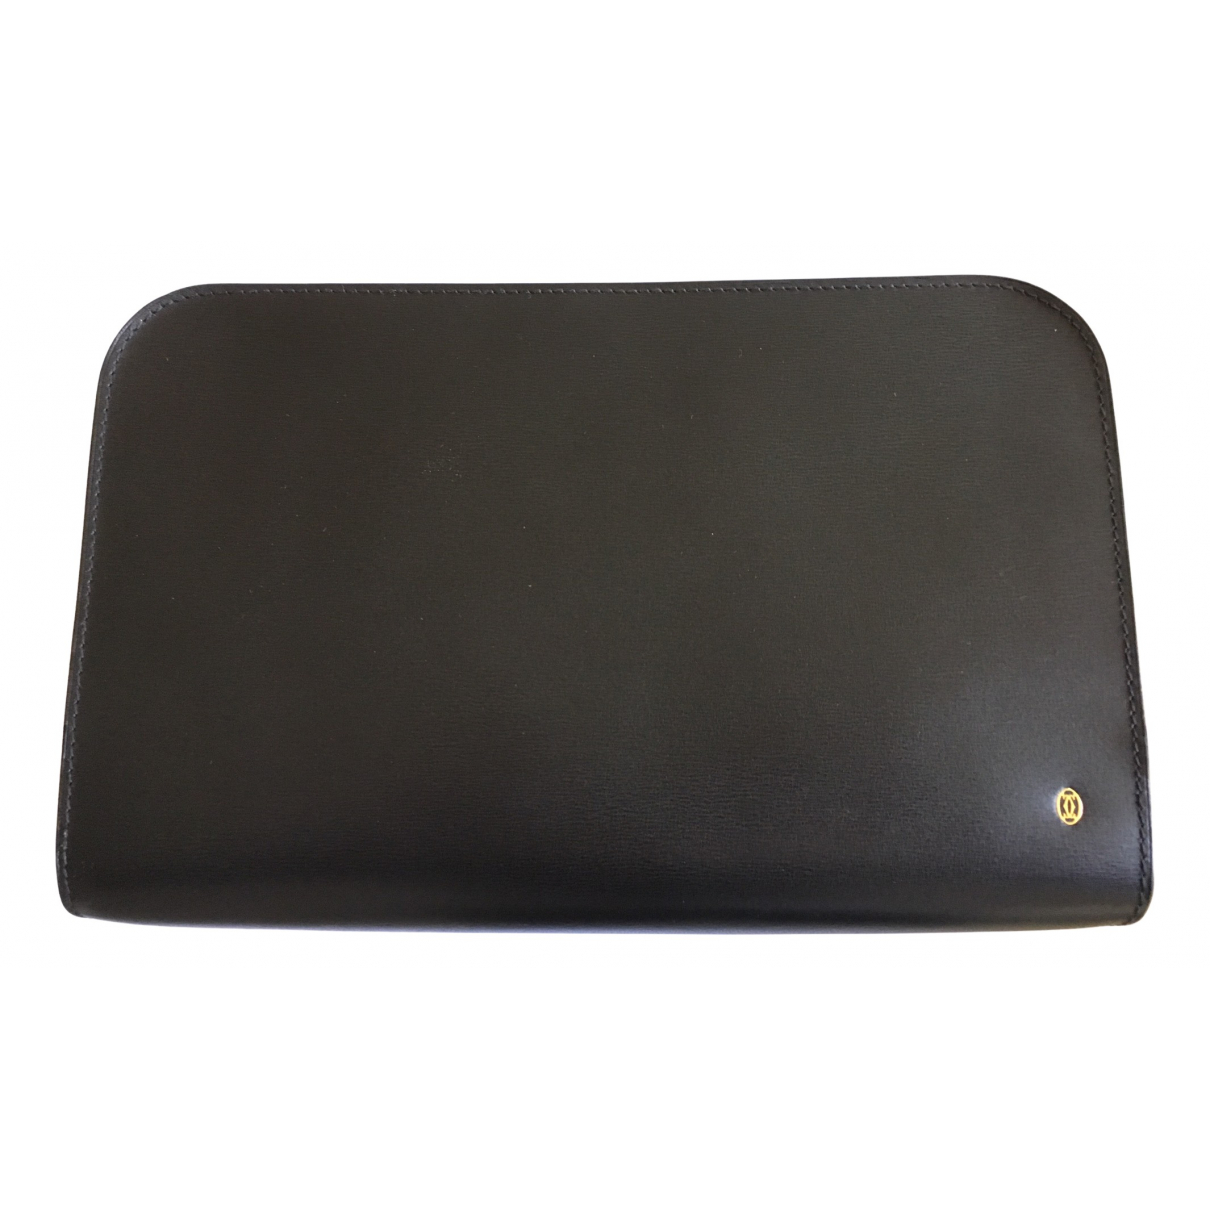 Cartier N Black Leather Clutch bag for Women N